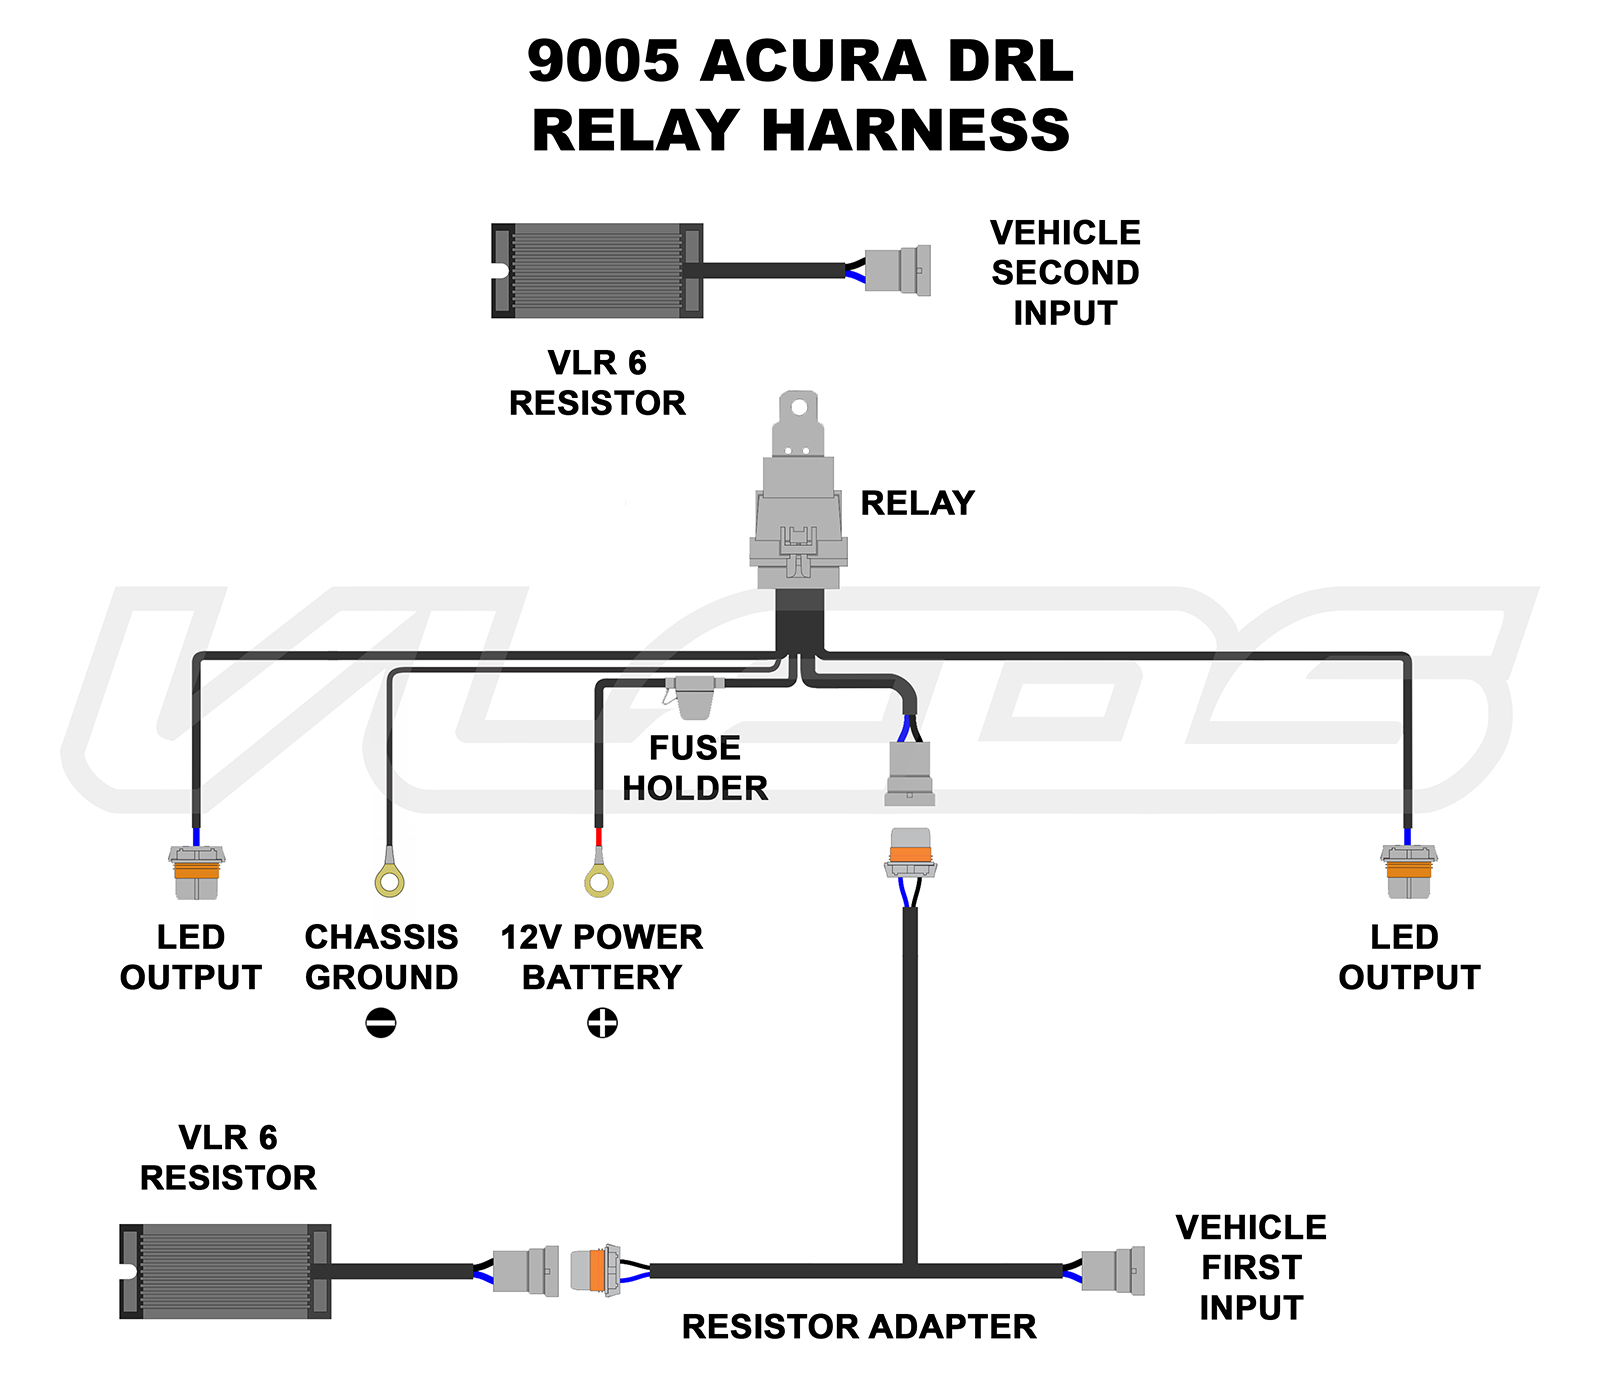 9005_Acura  Jeep Tail Light Wiring Diagram on jeep tail light cover, 2001 jeep grand cherokee tail light diagram, jeep tail light guards, jeep tail light wiring color, jeep cherokee wiring schematic, jeep 4.2 engine vacuum diagram, jeep cj light switch, jeep tail light repair, jeep tail light connector, jeep comanche wiring schematic, jeep wiring harness connector bulk, headlight wiring diagram, jeep cherokee relay diagram, jeep fuse diagram, jeep emissions diagram, jeep turn signal diagram, jeep cj headlight switch diagram, jeep wrangler tail lights, jeep cj7 wiring-diagram, jeep cj7 fuel line diagram,